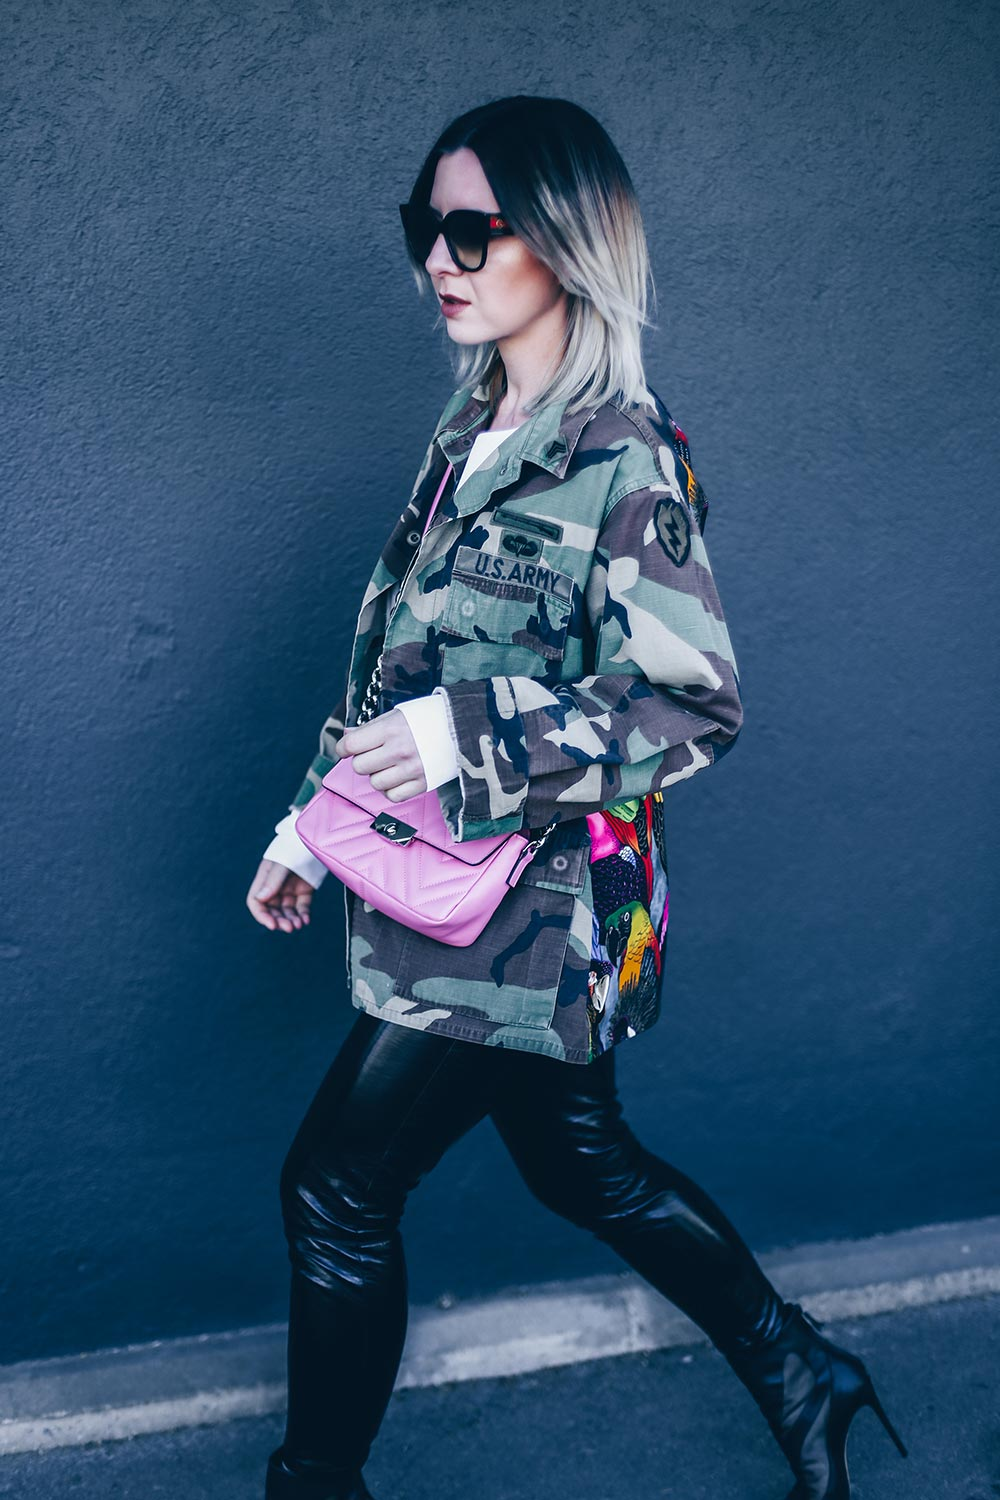 Camouflage Parka stylen, Camouflage kombinieren, pinke Tasche, Casadei Boots, Streetstyle, Gucci Sonnenbrille, Modeblog, Fashion Blog, Outfit Blog, Style Blog, www.whoismocca.com